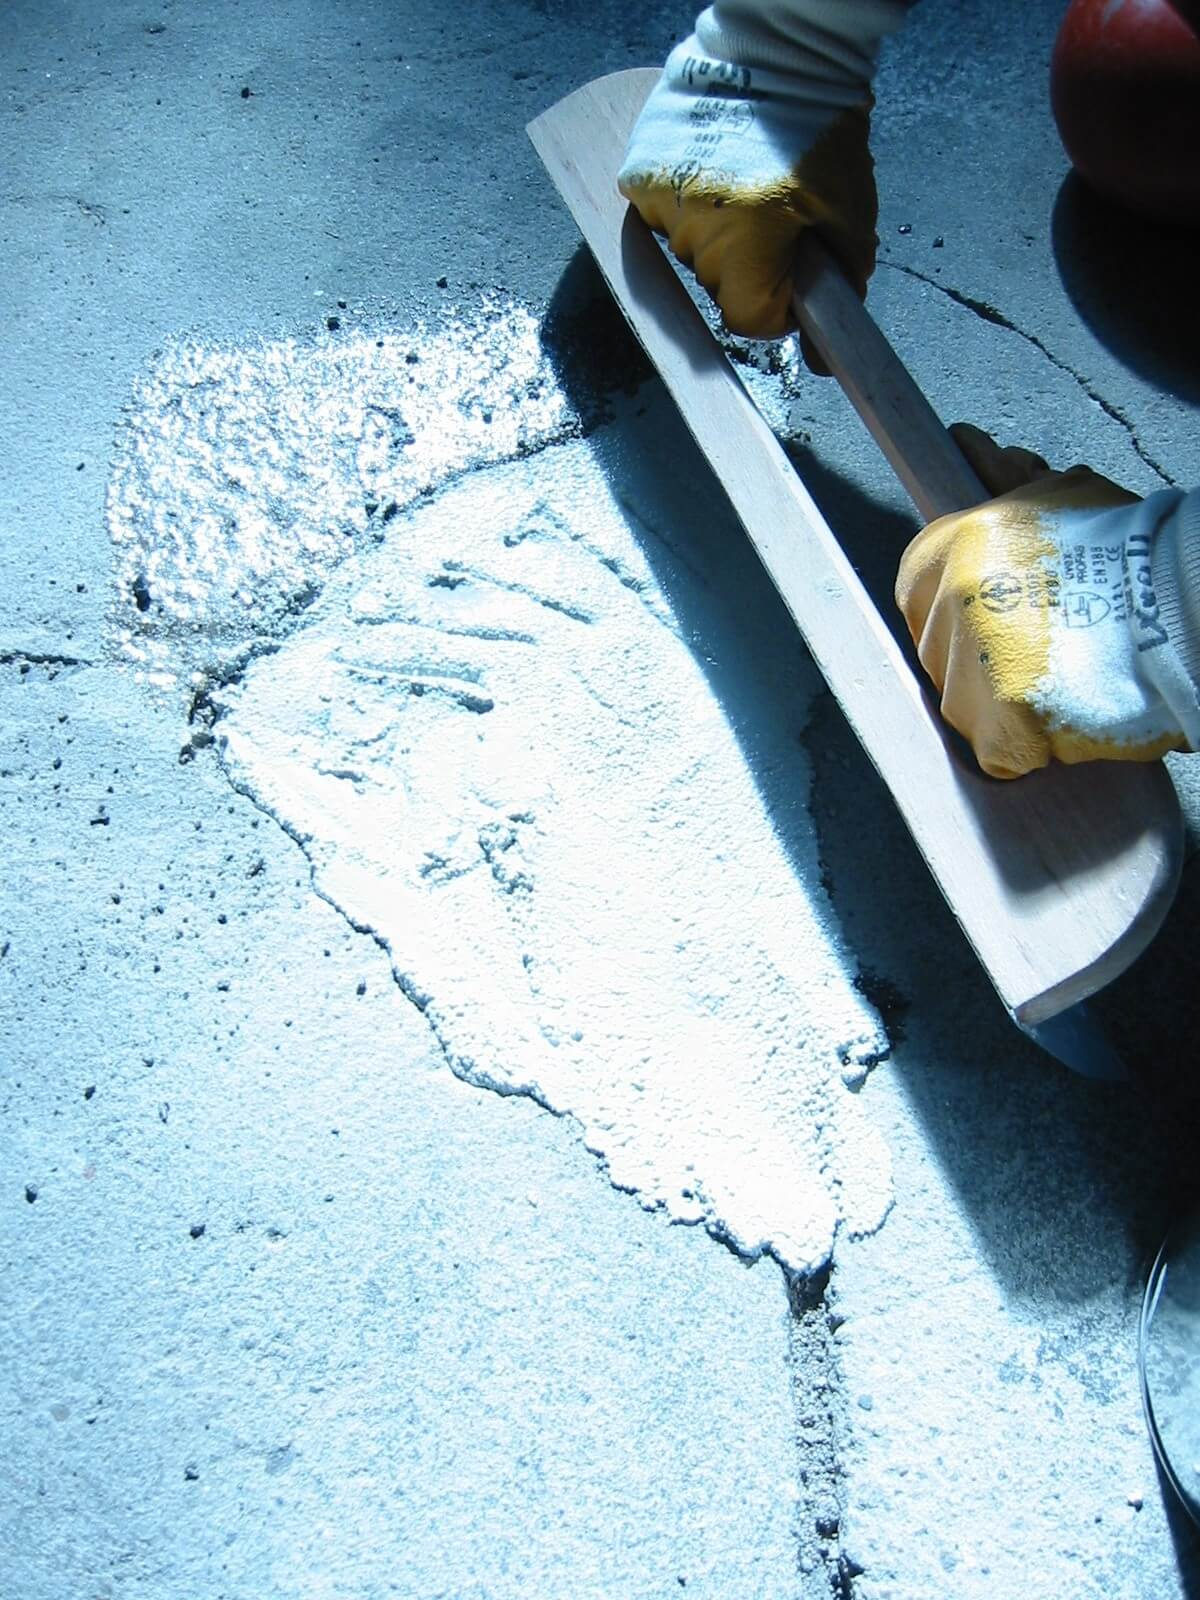 The National Flooring Co - Concrete repair